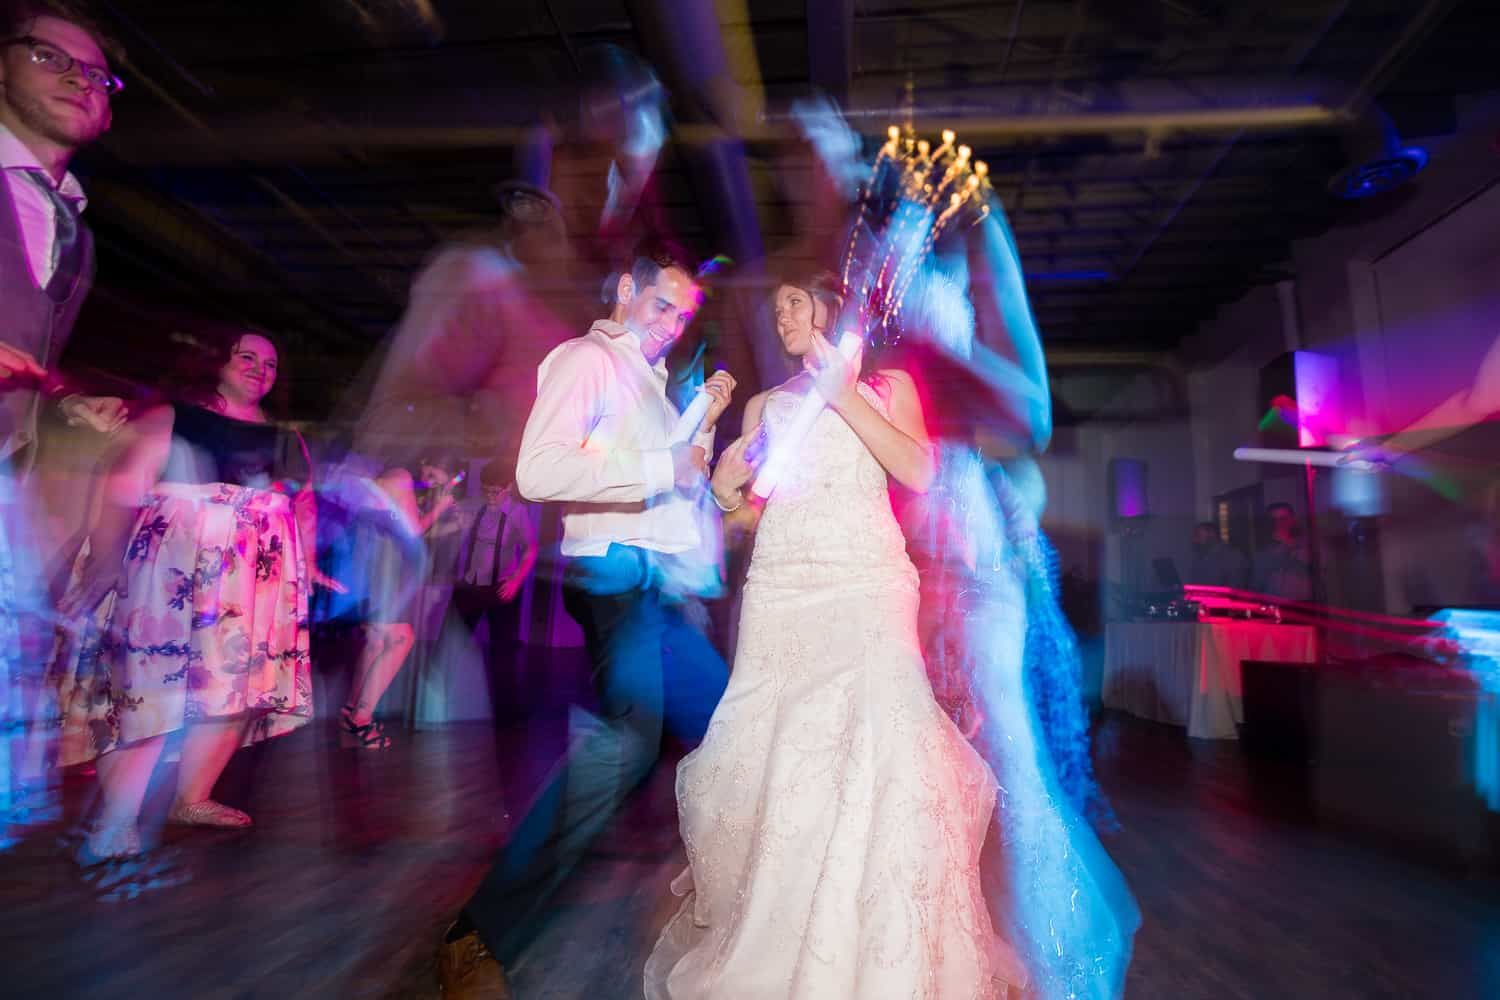 a long exposure photo on the dance floor with the bride double exposed.